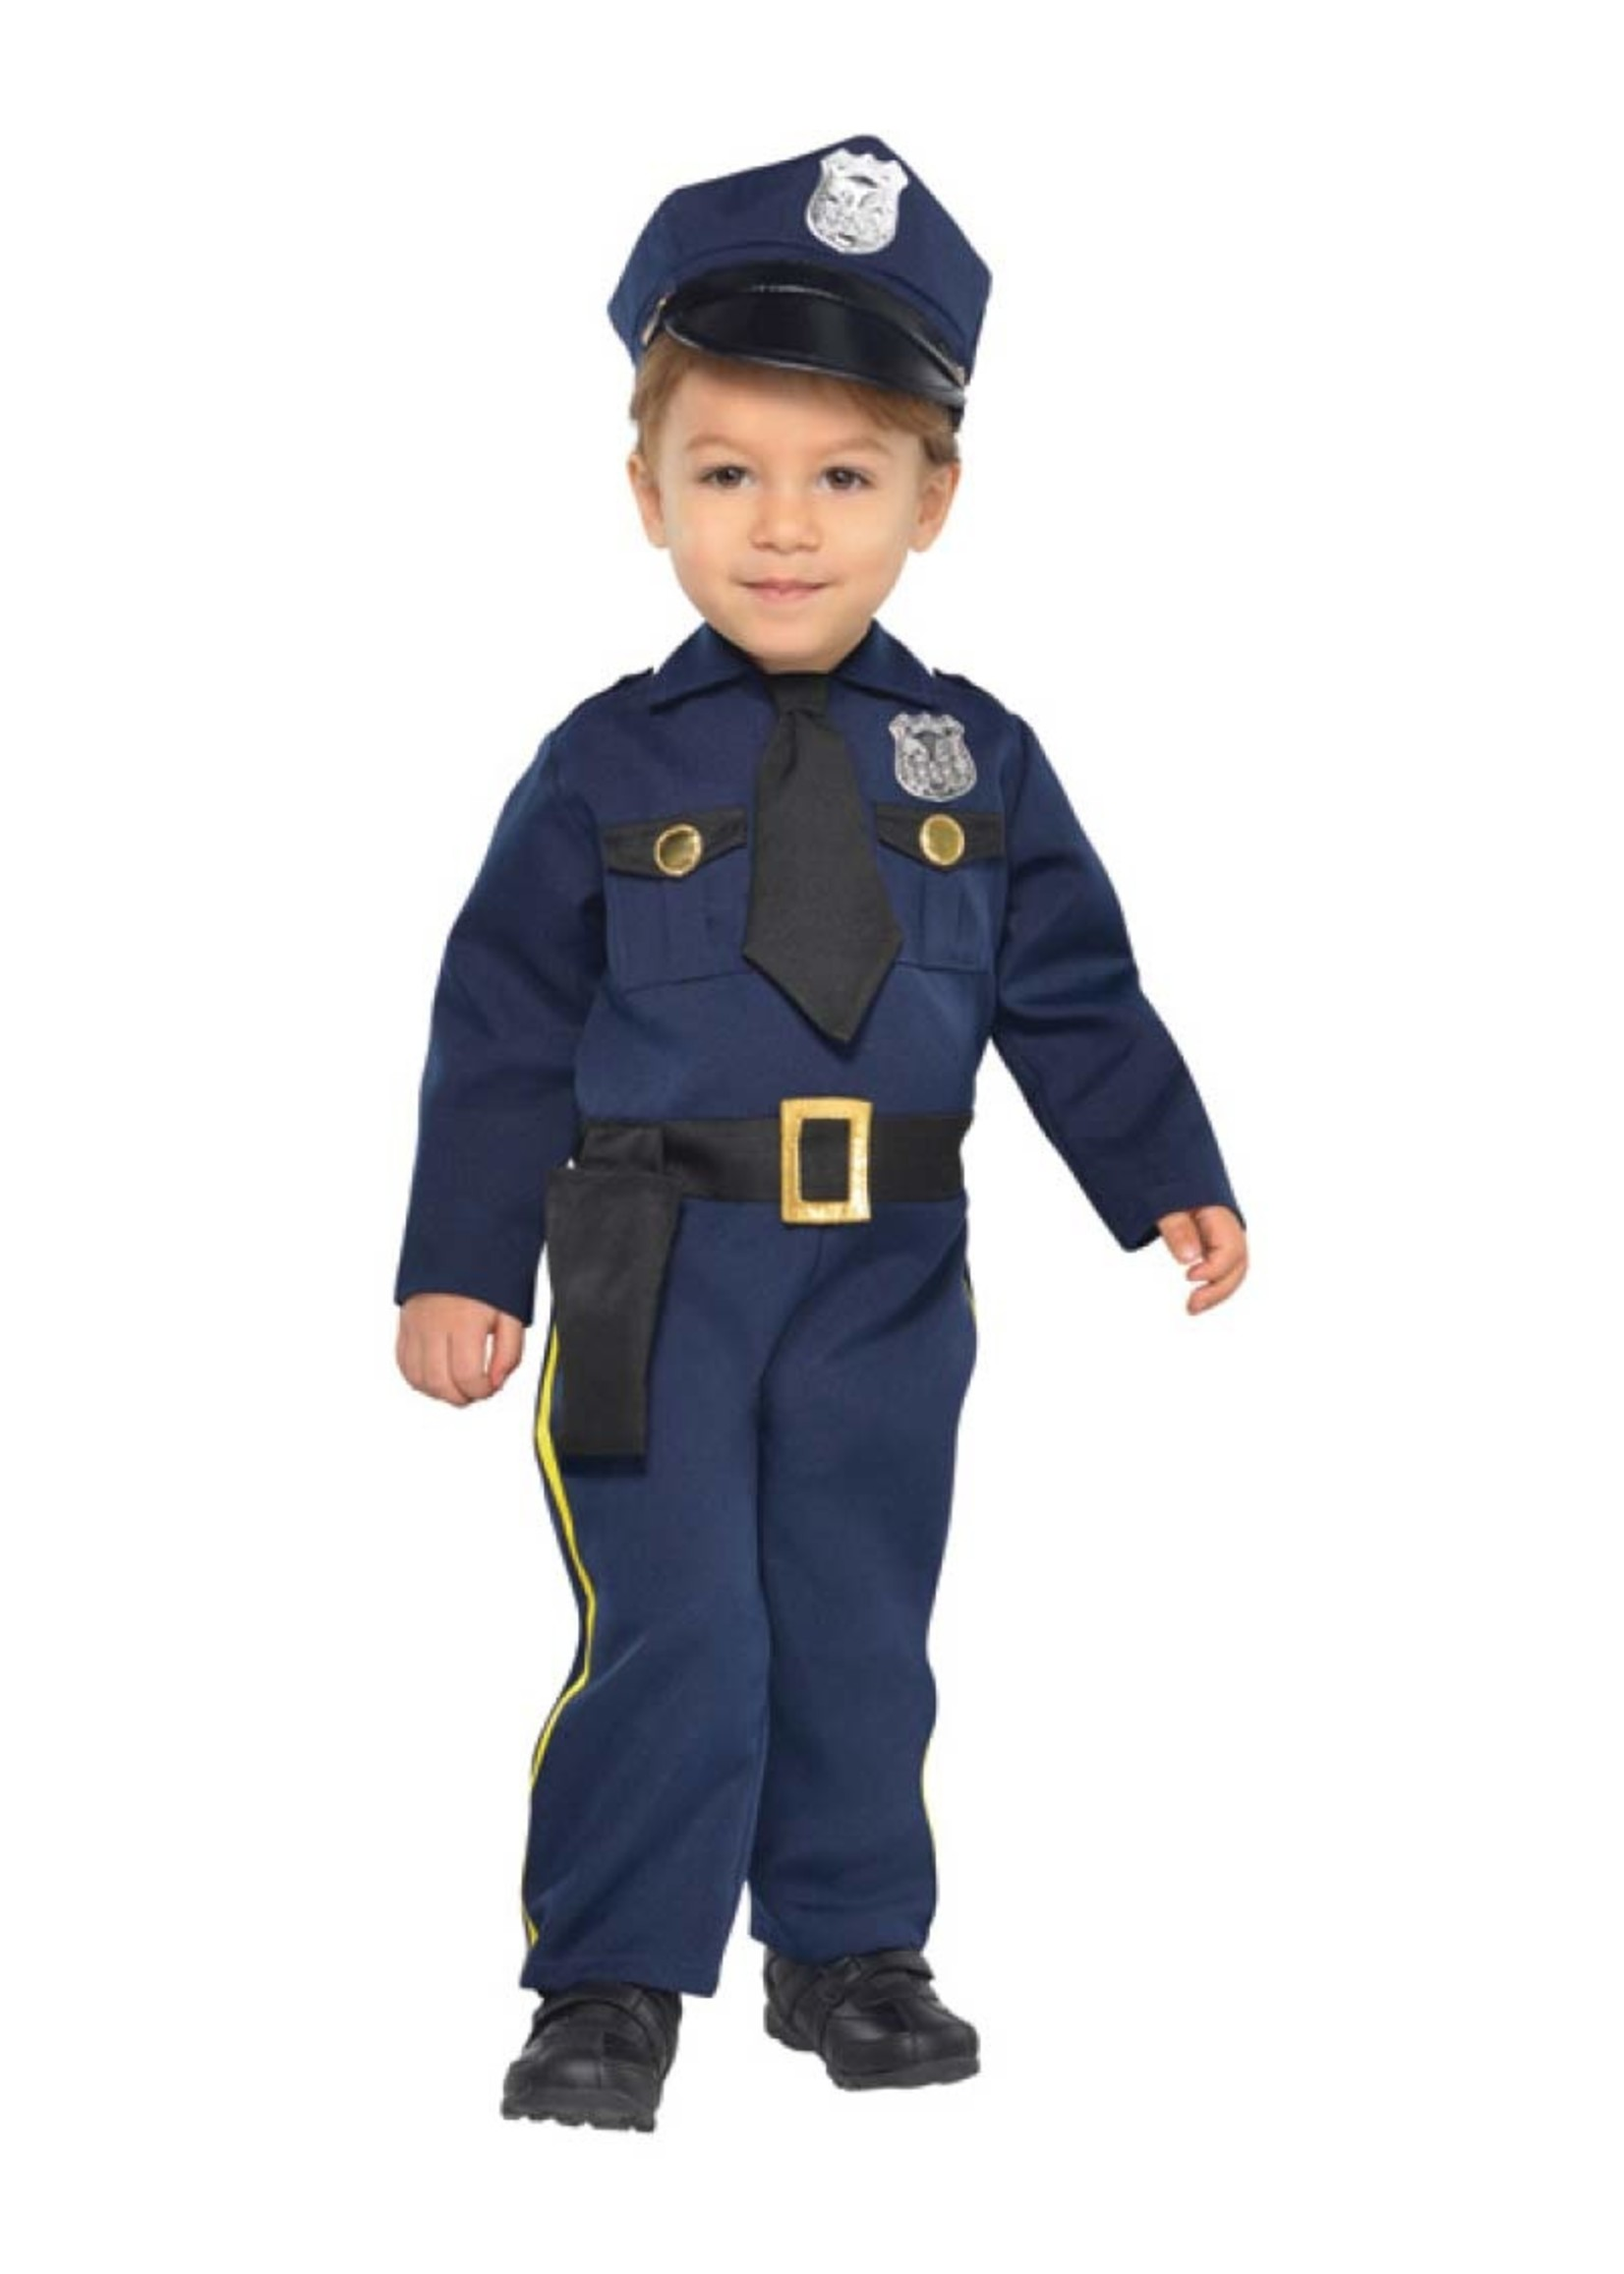 Cop Recruit - Infant